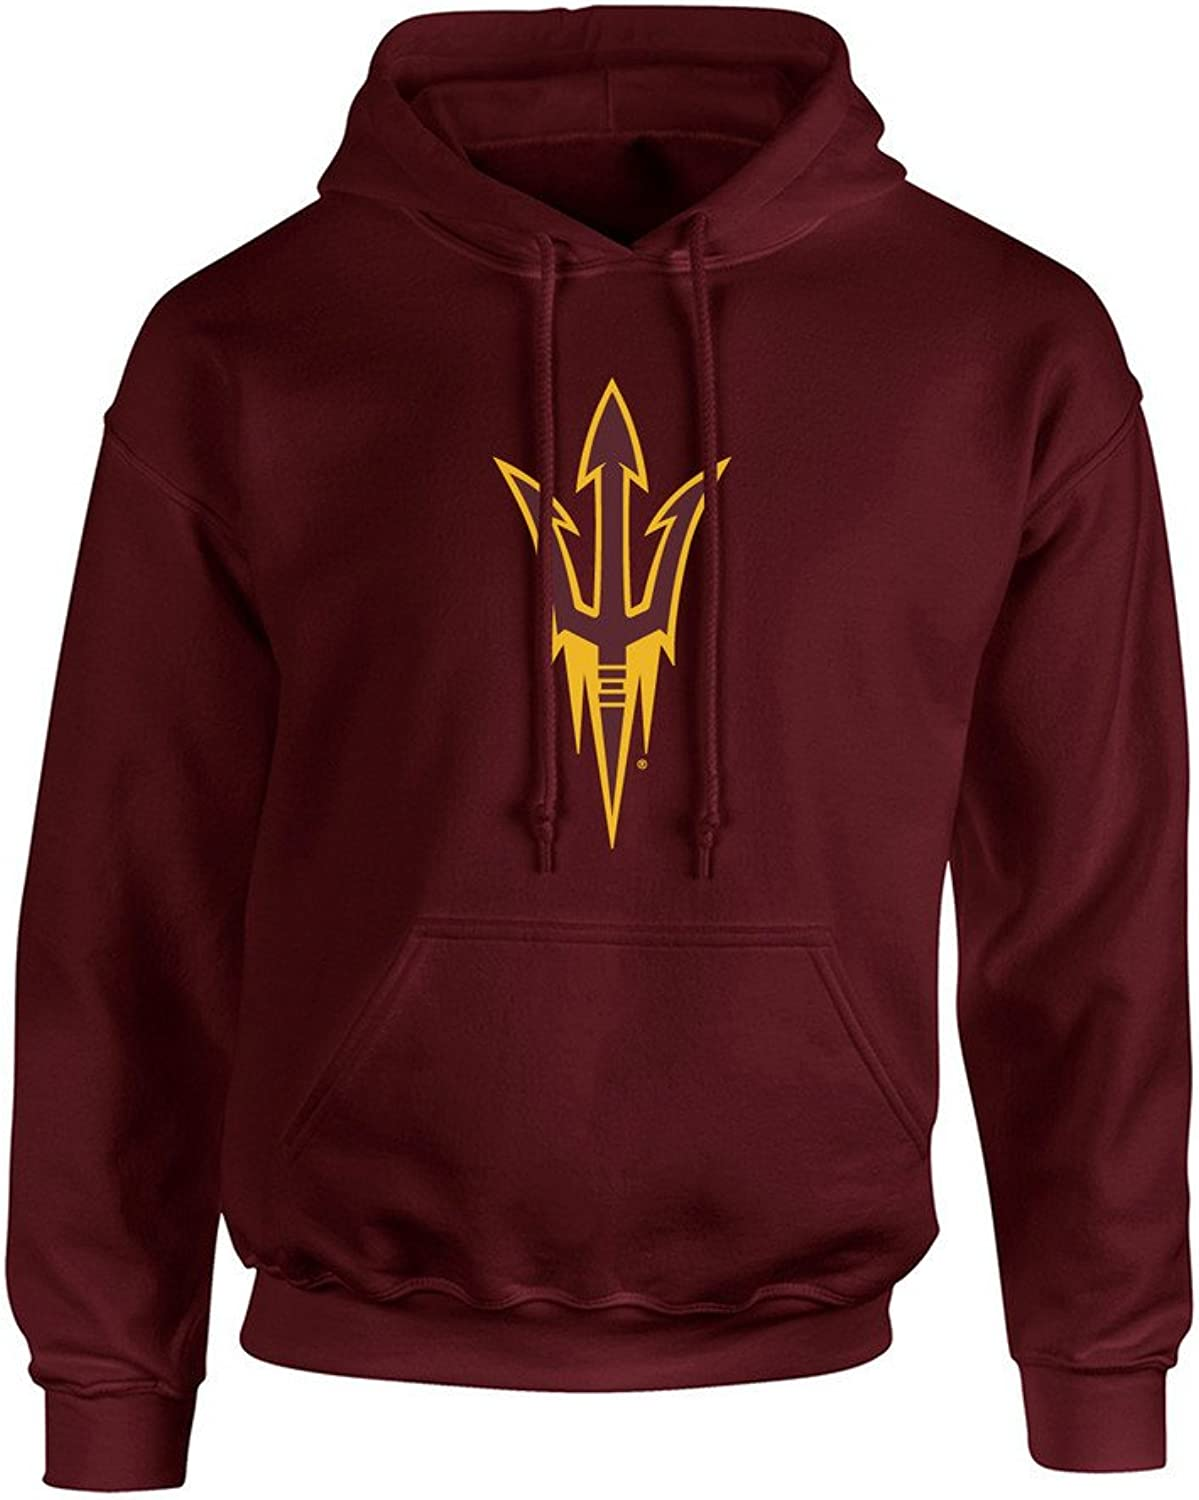 Elite Fan Shop NCAA Men's Hoodie Sweatshirt Team Icon